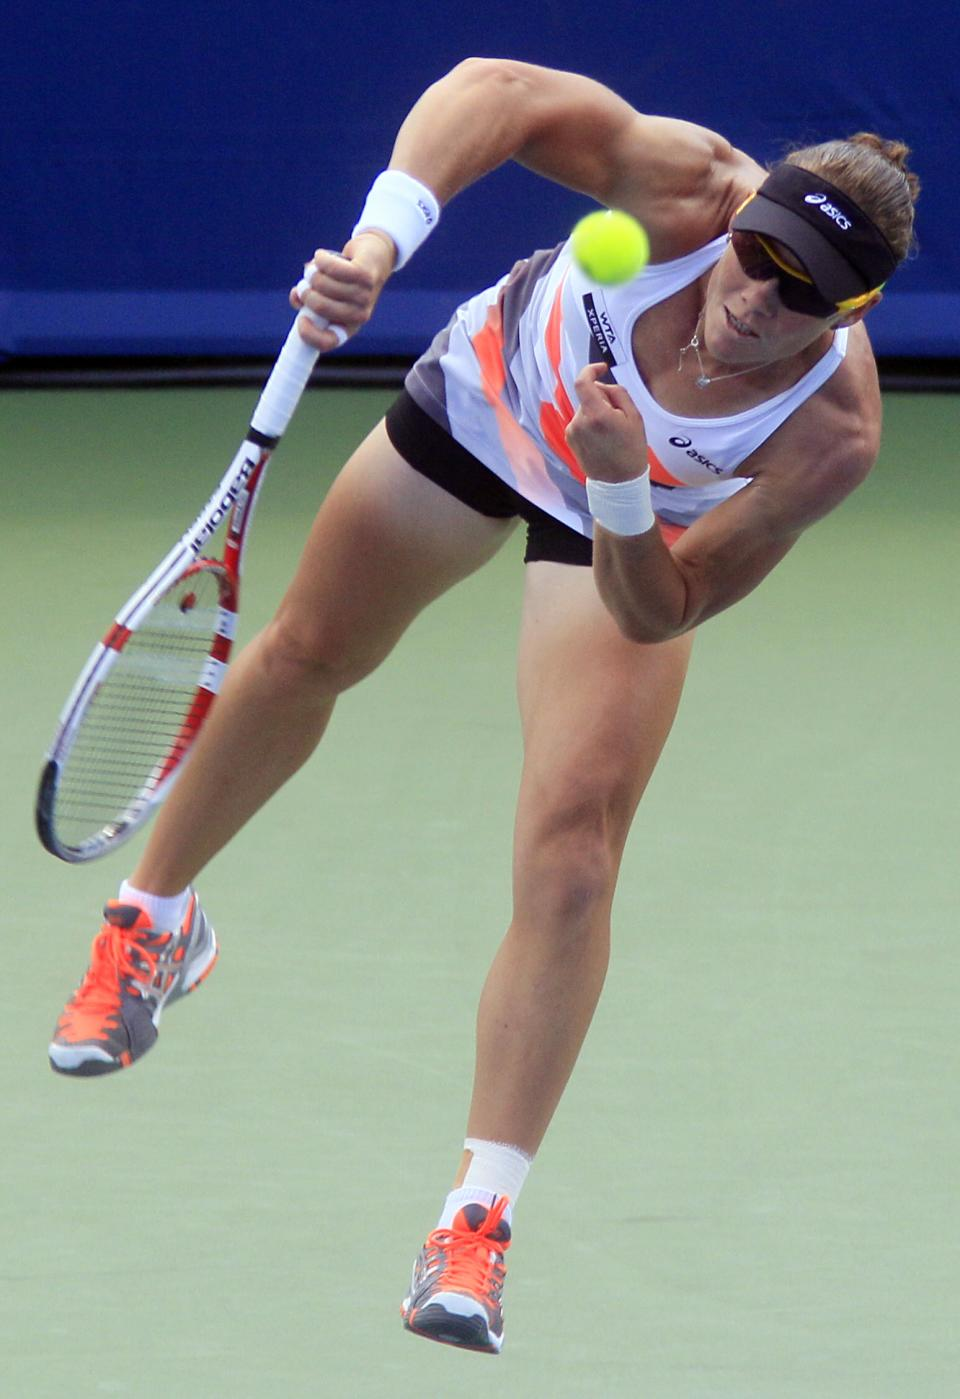 Samantha Stosur, from Australia, serves against Venus Williams during a quarterfinals match at the Western & Southern Open tennis tournament, Friday, Aug. 17, 2012, in Mason, Ohio. (AP Photo/Al Behrman)